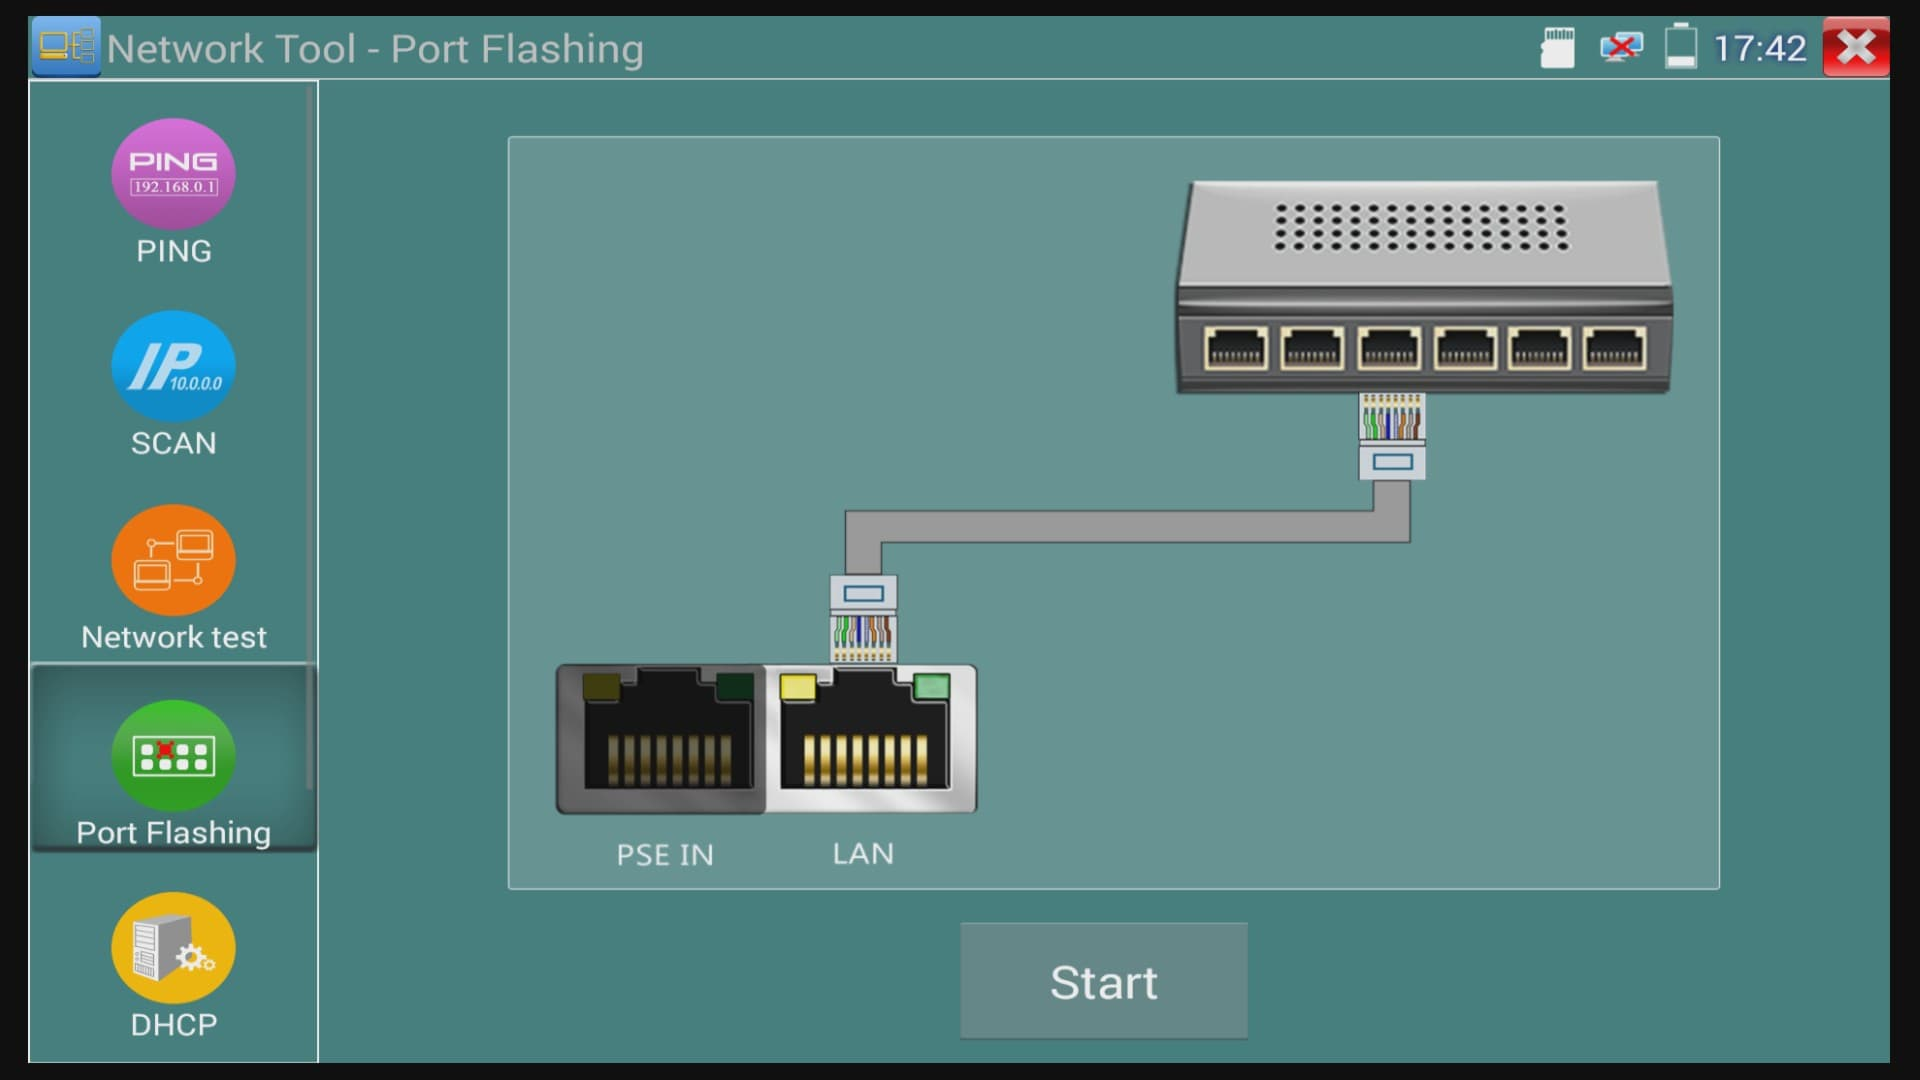 Network Cable Port Locator Tool | Ethernet Cable Port Mapping